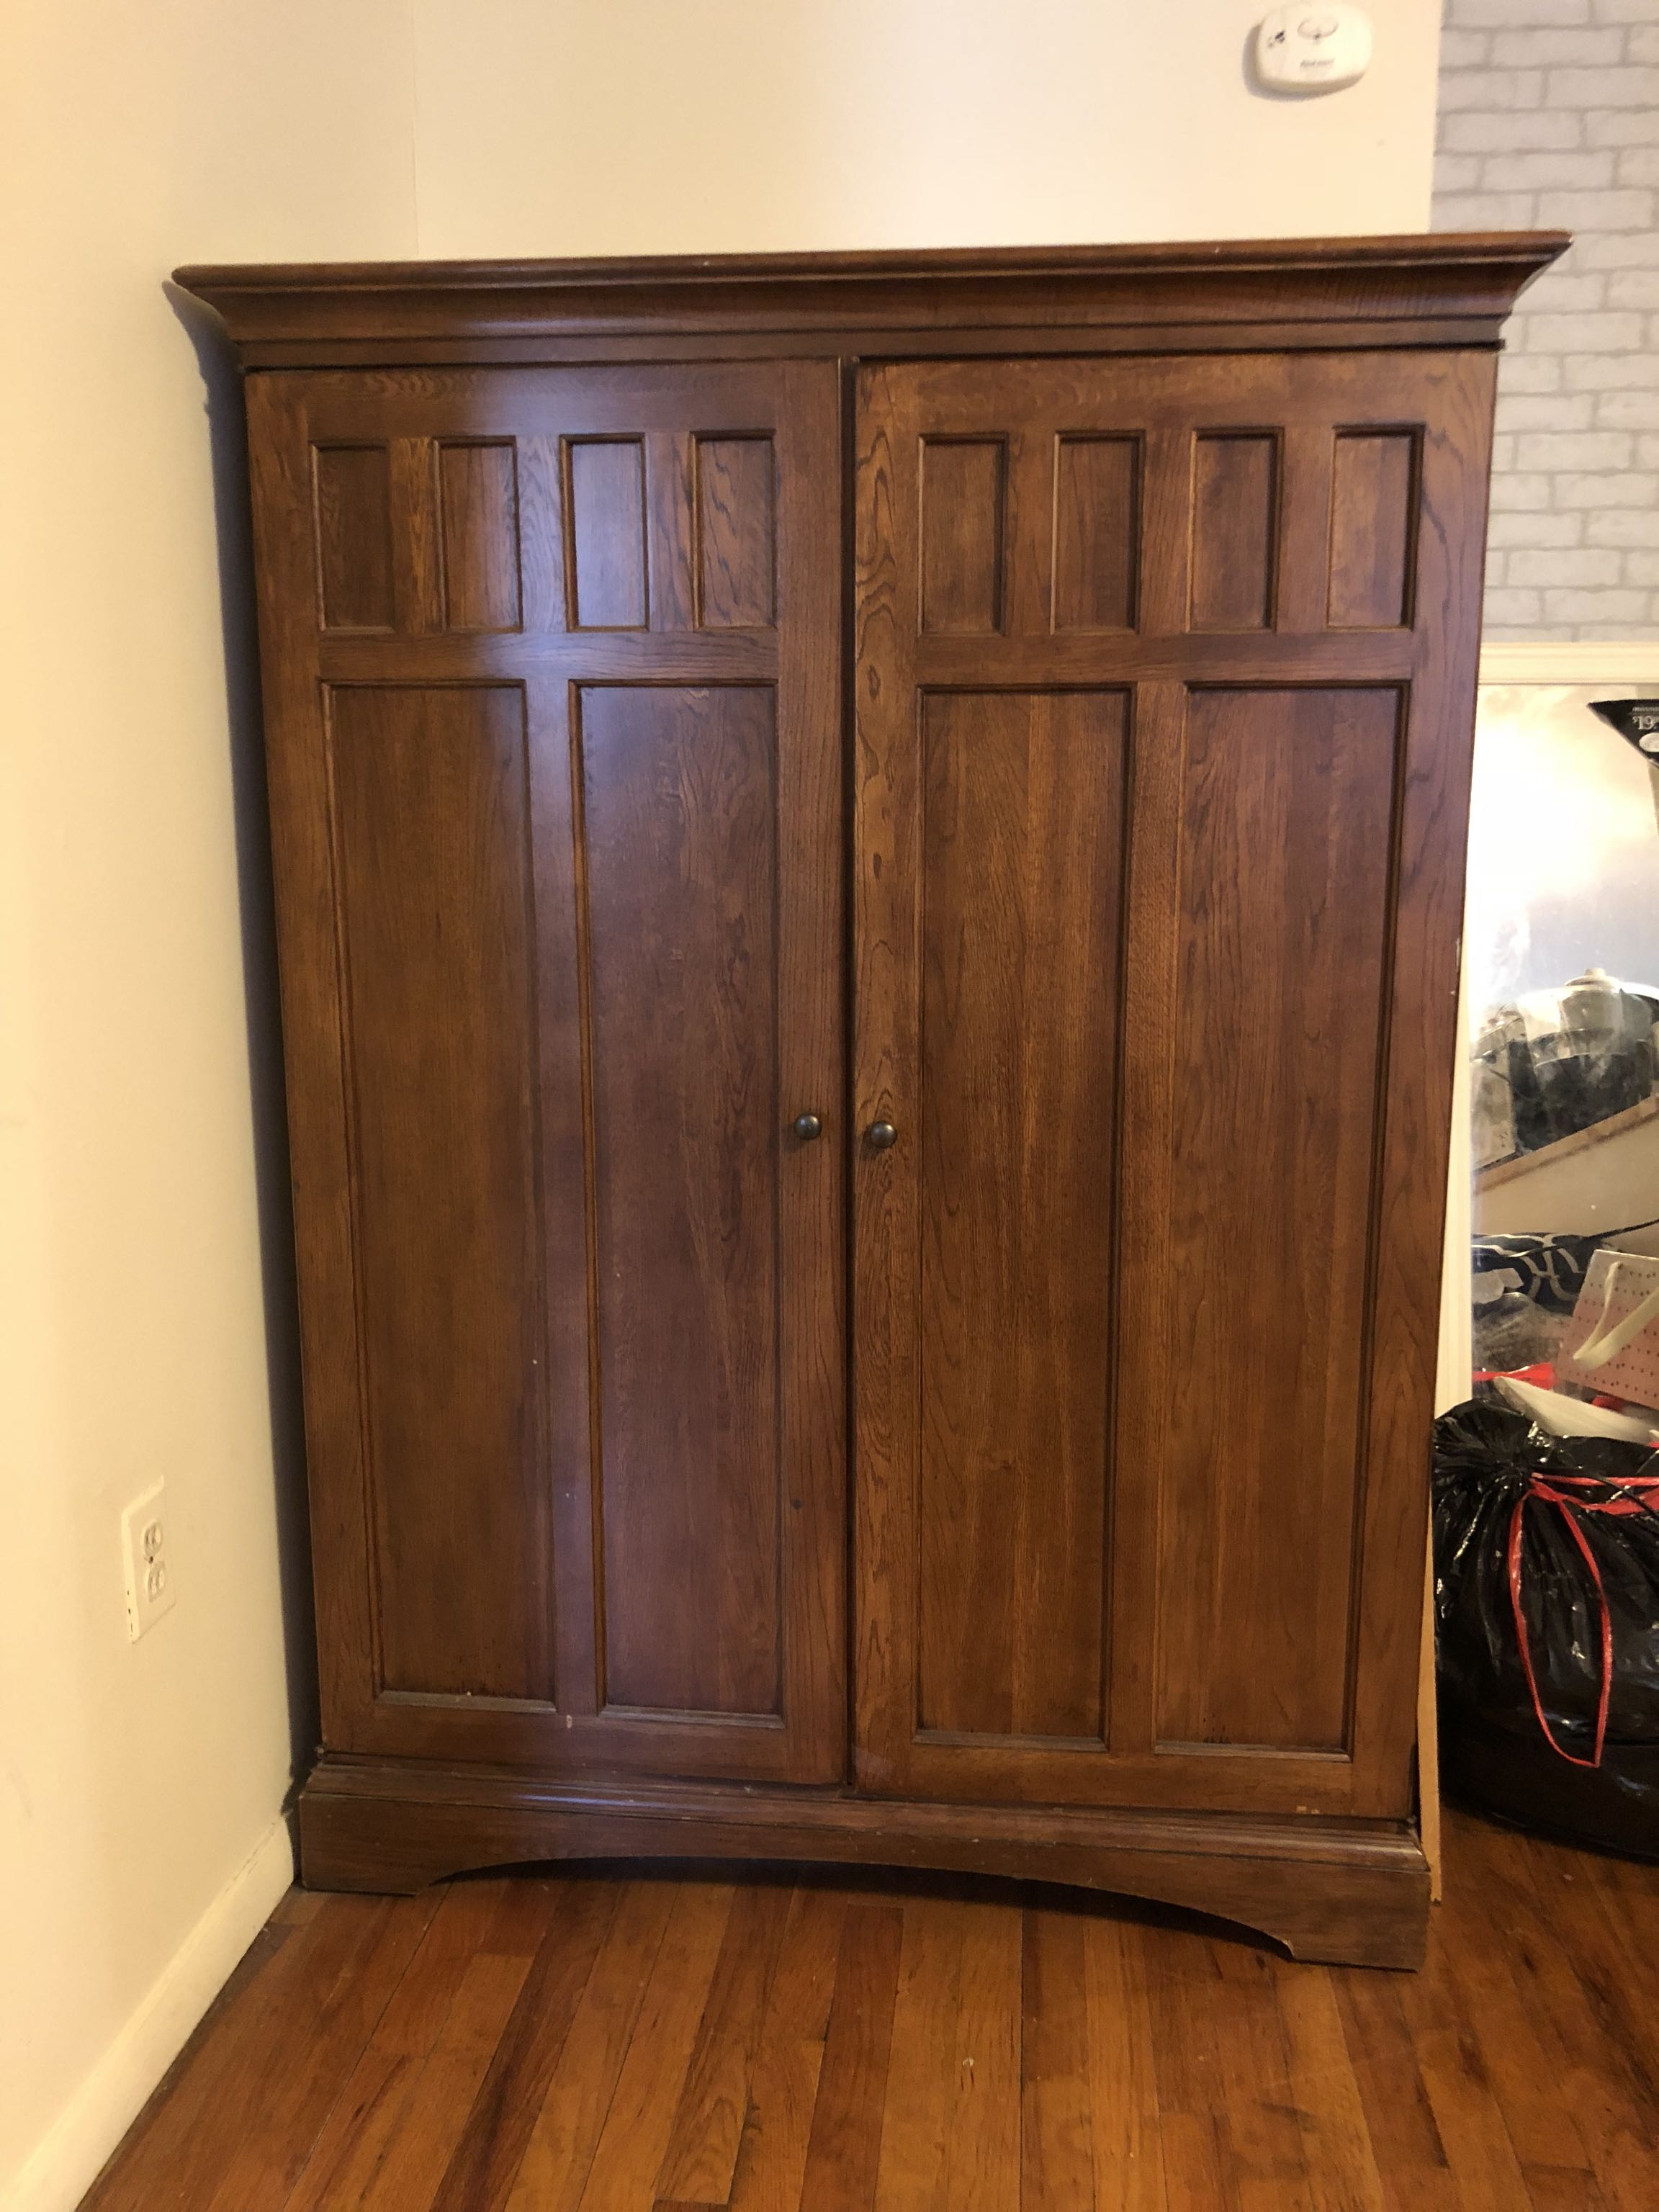 Vintage entertainment center with working plugs